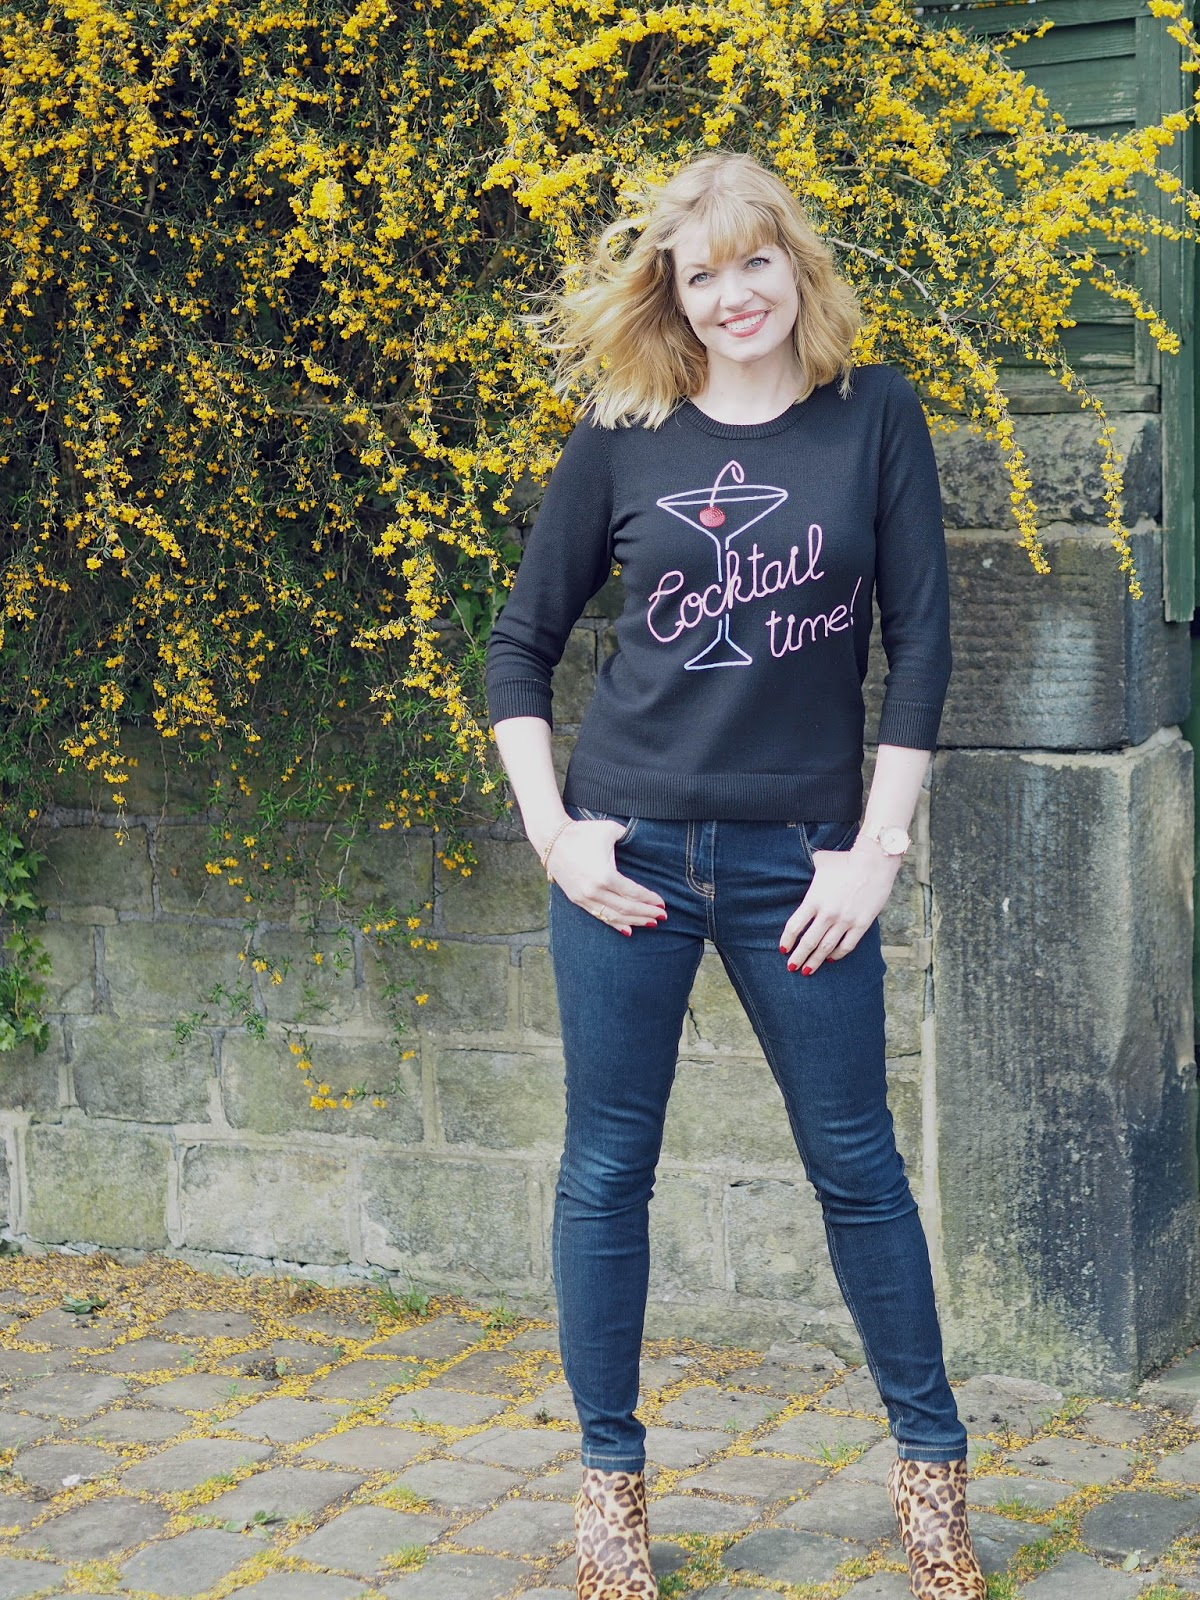 What Lizzy Loves. Cocktail glass logo top worn with skinny jeans and high-heeled leopard print boots